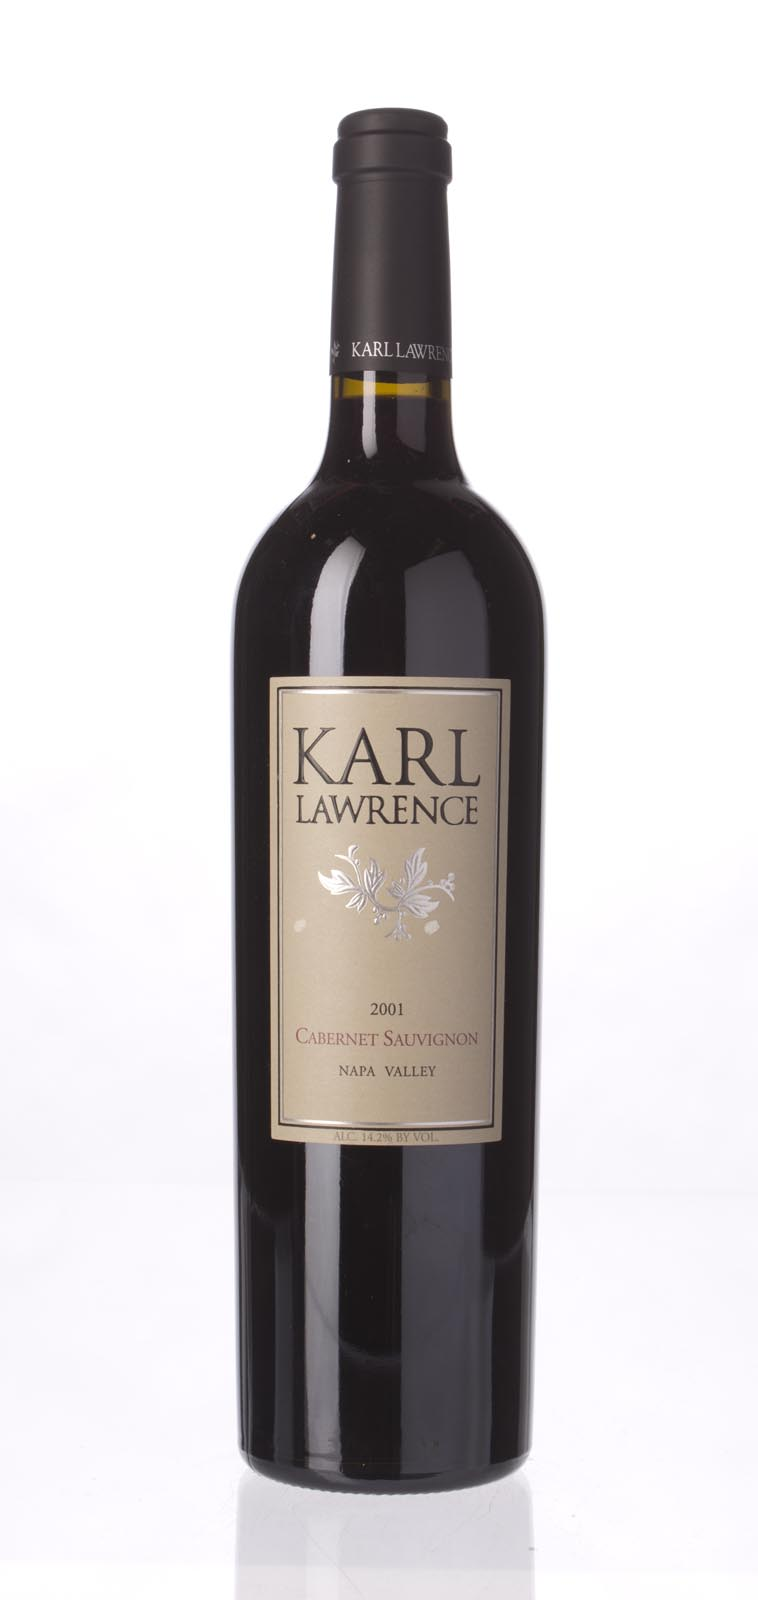 Karl Lawrence Cabernet Sauvignon Napa Valley 2001, 750mL (WA88) from The BPW - Merchants of rare and fine wines.